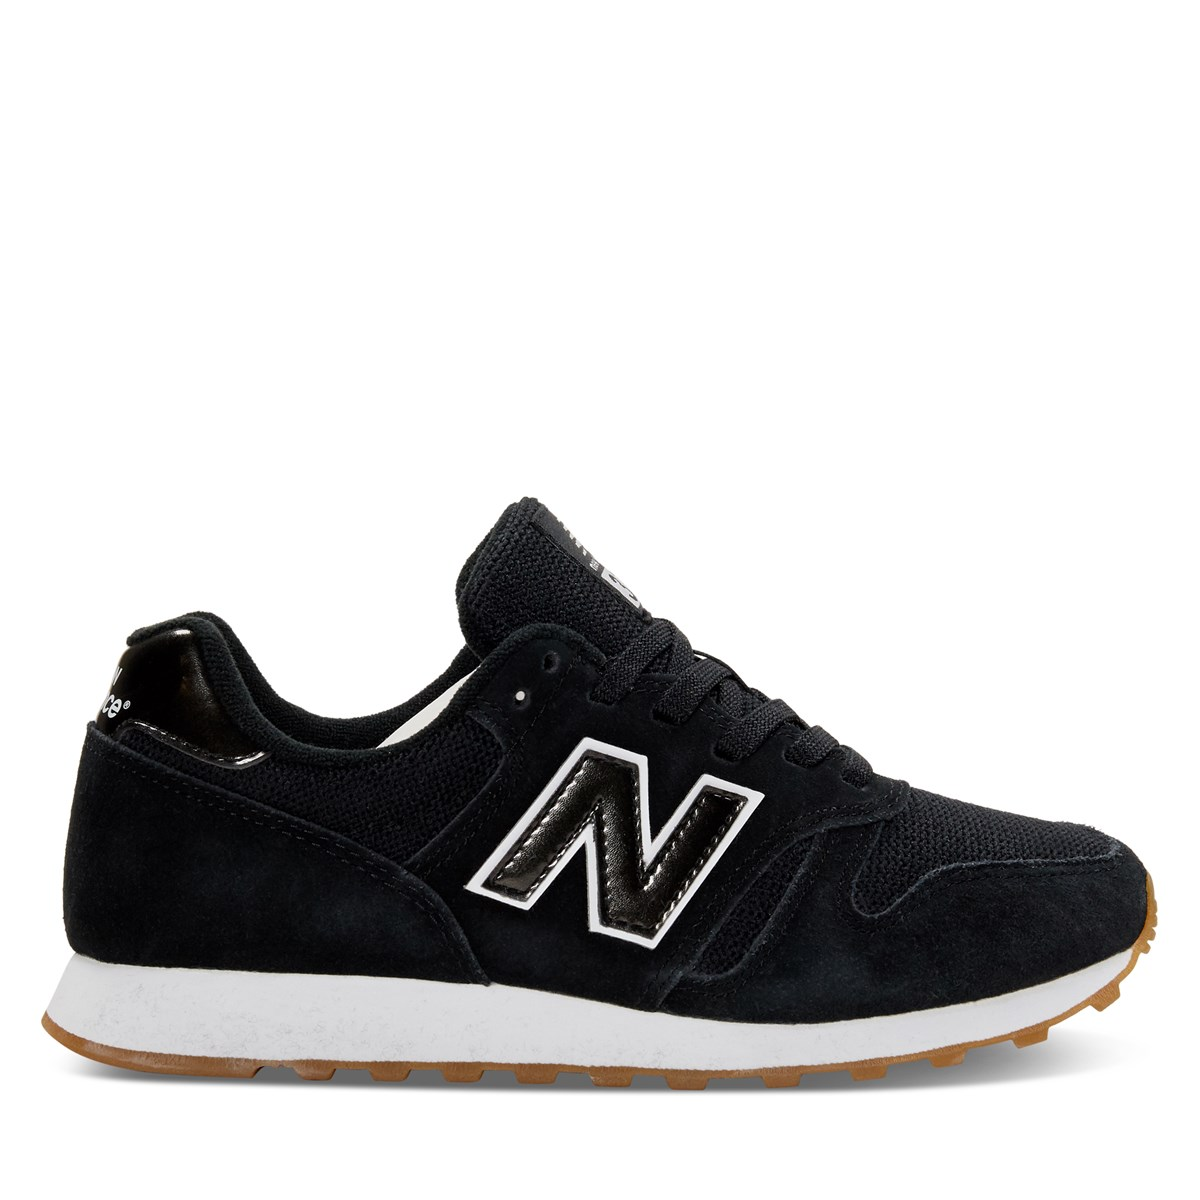 Women's 373 Sneakers in Black